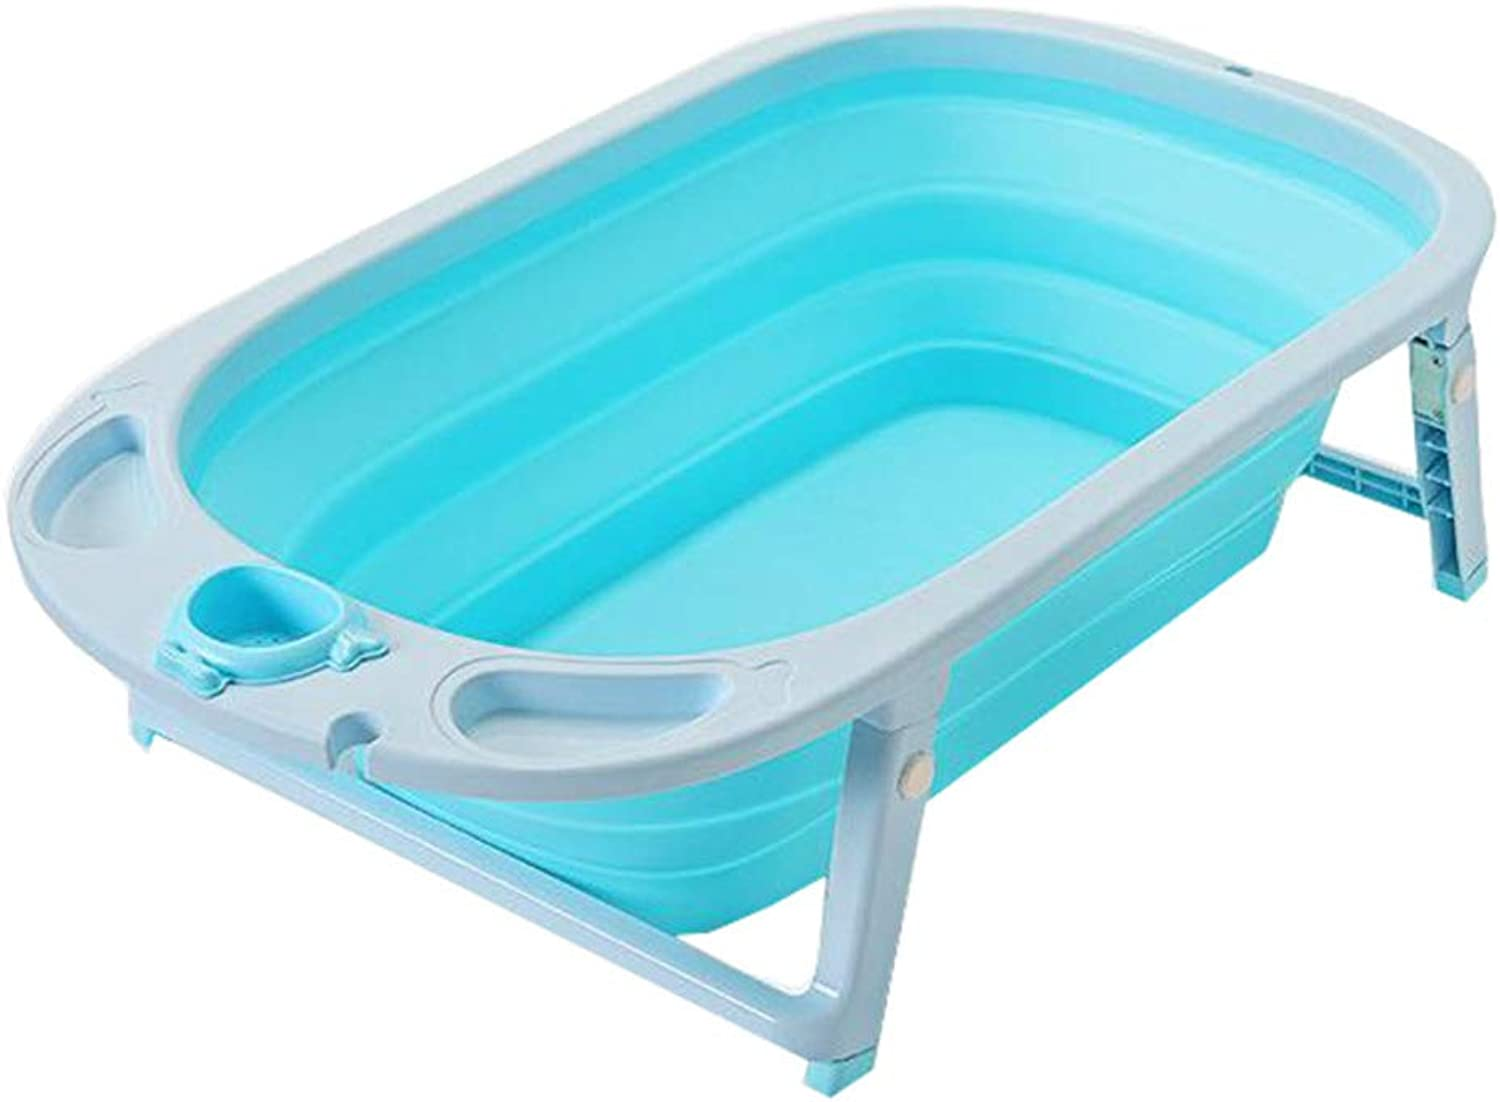 Mai Dou Foldable Baby Tub   Lightweight And Sturdy   Easy To Store   Suitable For Baby Use (bluee),bluee-83x23x47.5cm